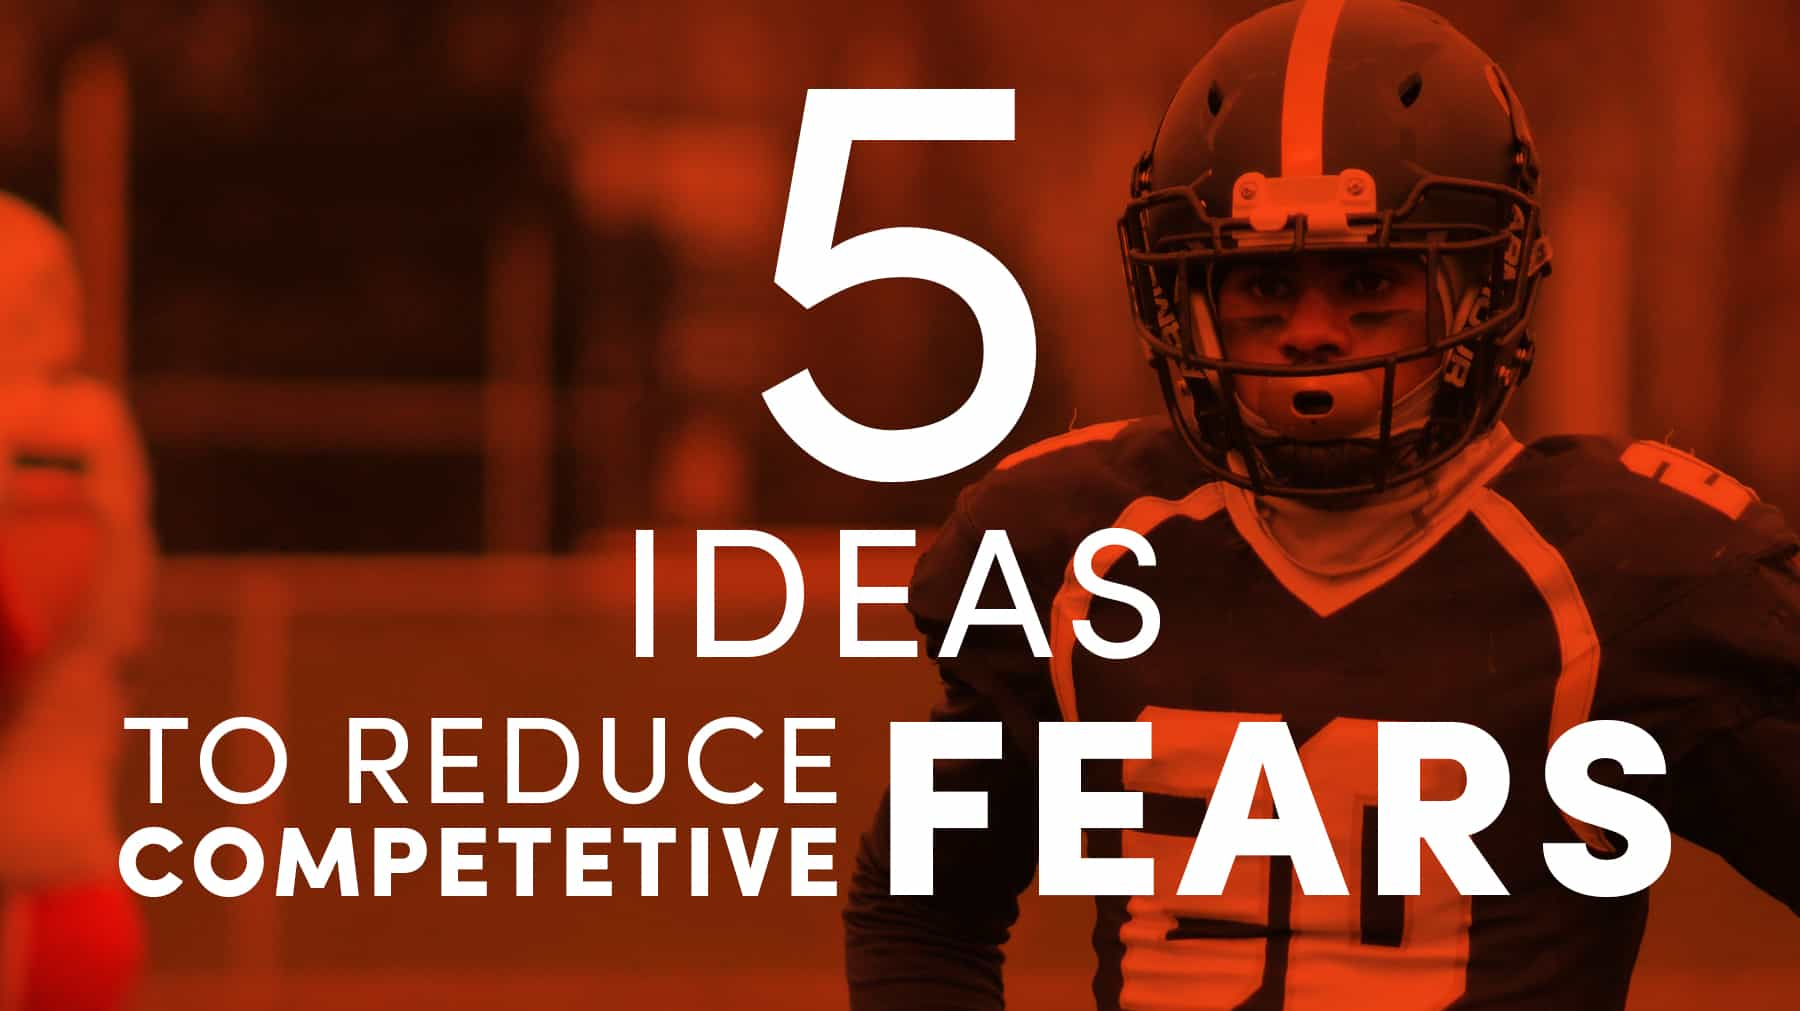 5 ideas to reduce competitive fears